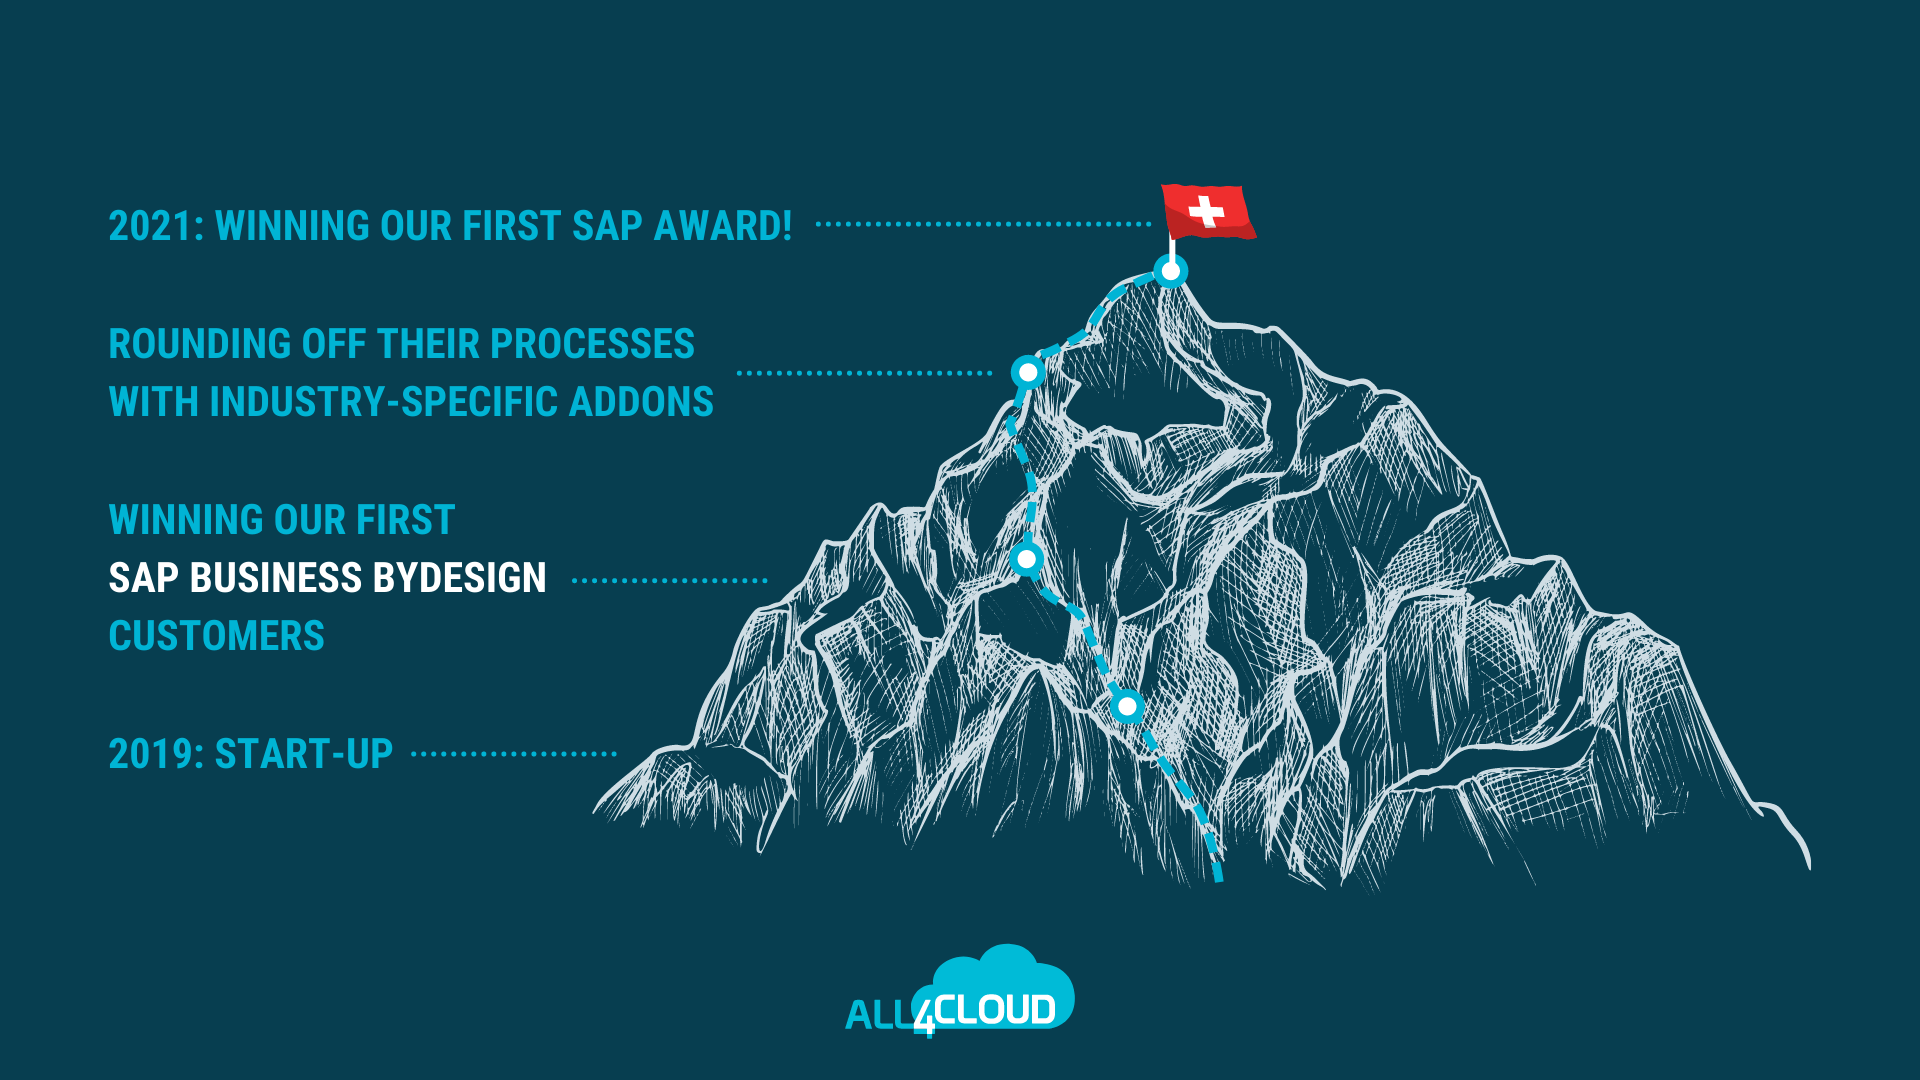 all4cloud-schweiz-ag-sap-business-bydesign-sap-newcomer-award journey switzerland